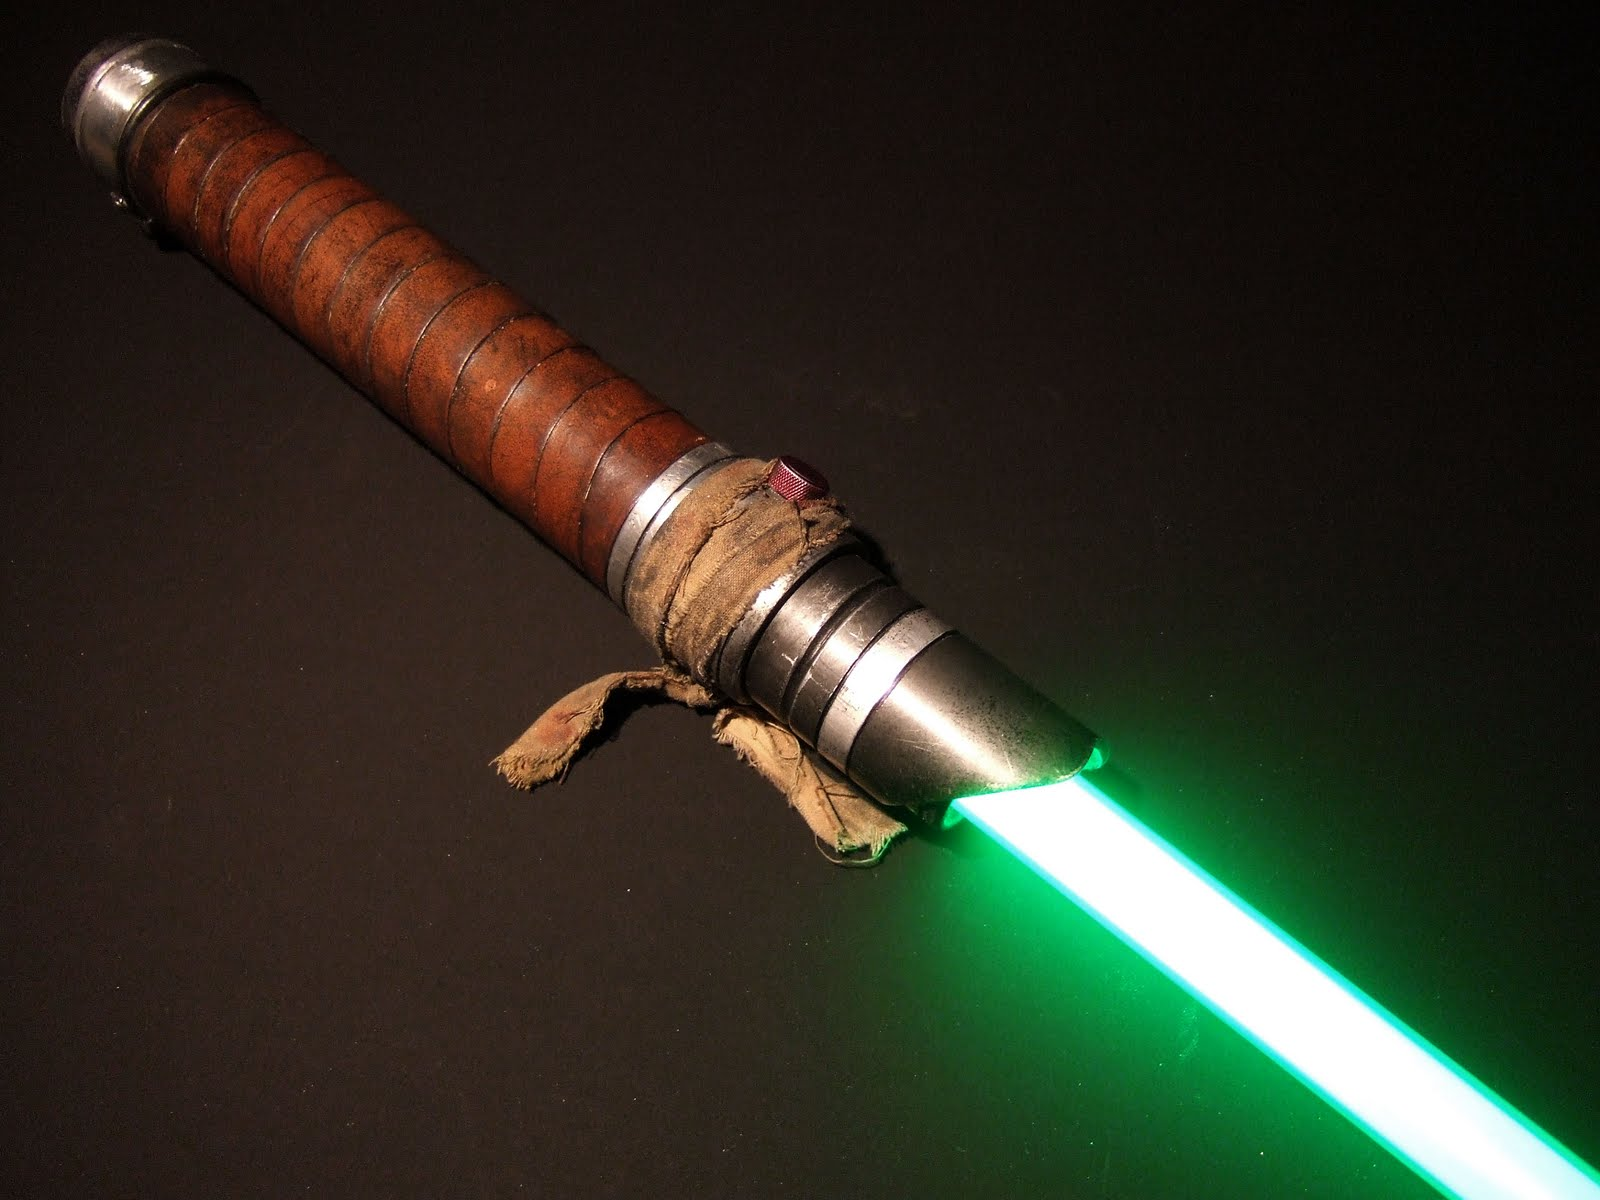 Who do you think has the best lightsaber? Darth Sidious gets my ...